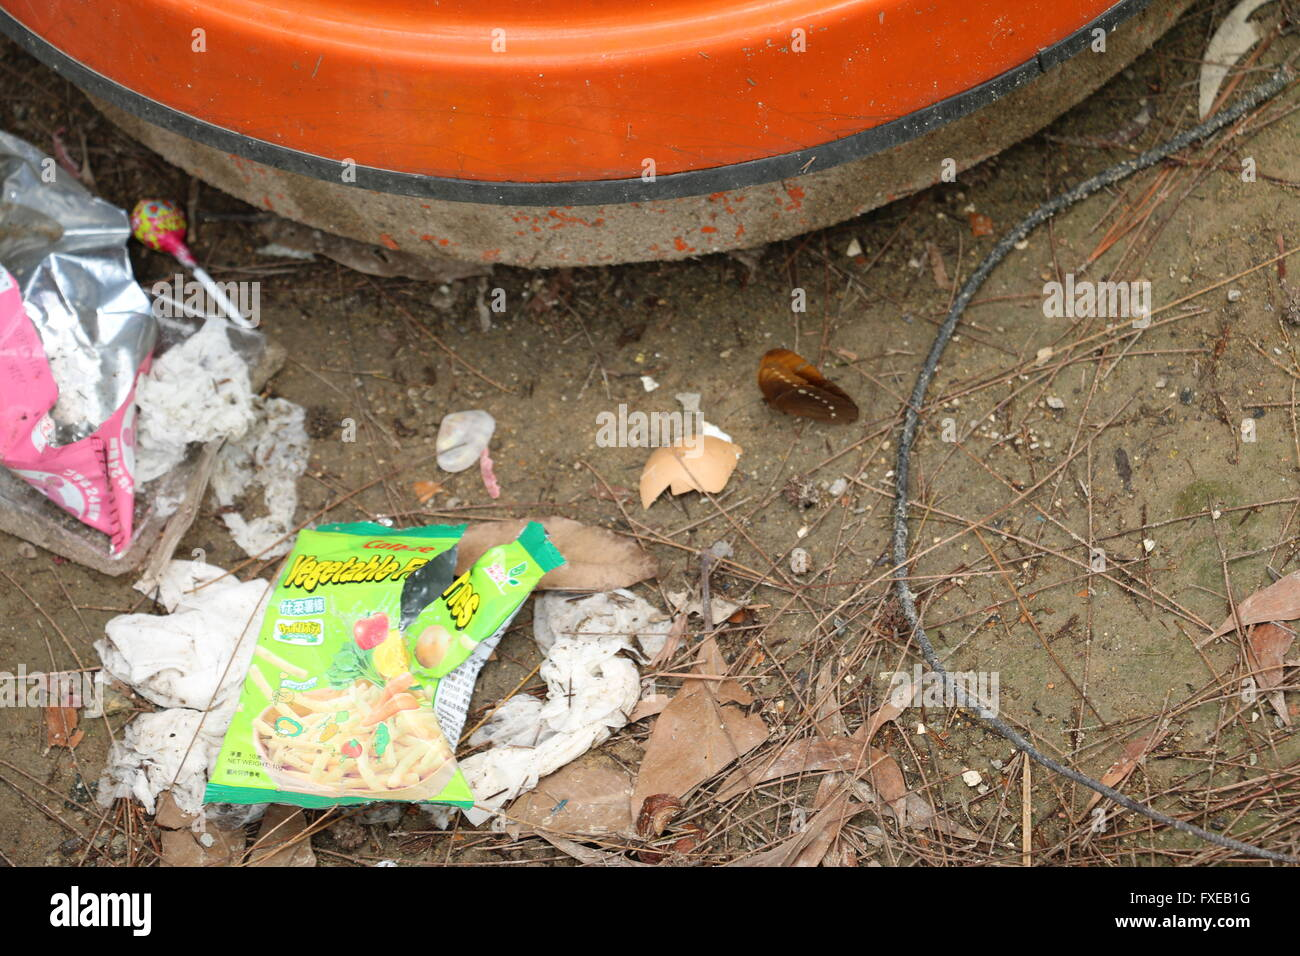 Garbage and a butterfly. - Stock Image